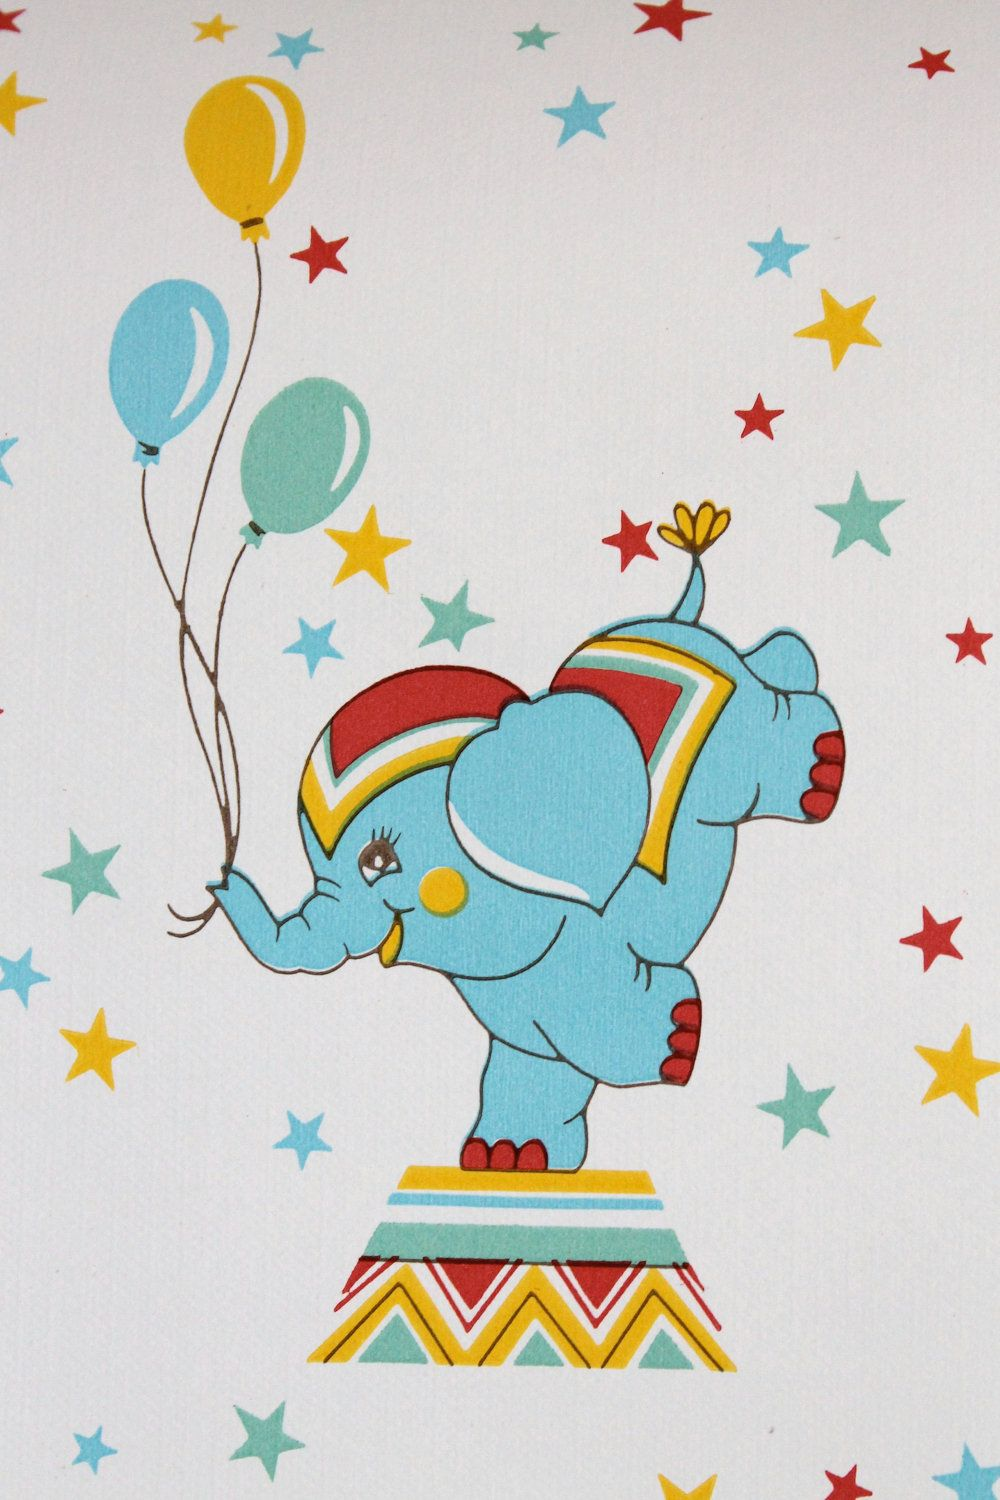 Vintage unpaste Wallpaper of blue circus elephants with balloons - red, yellow and blue - Price per yard